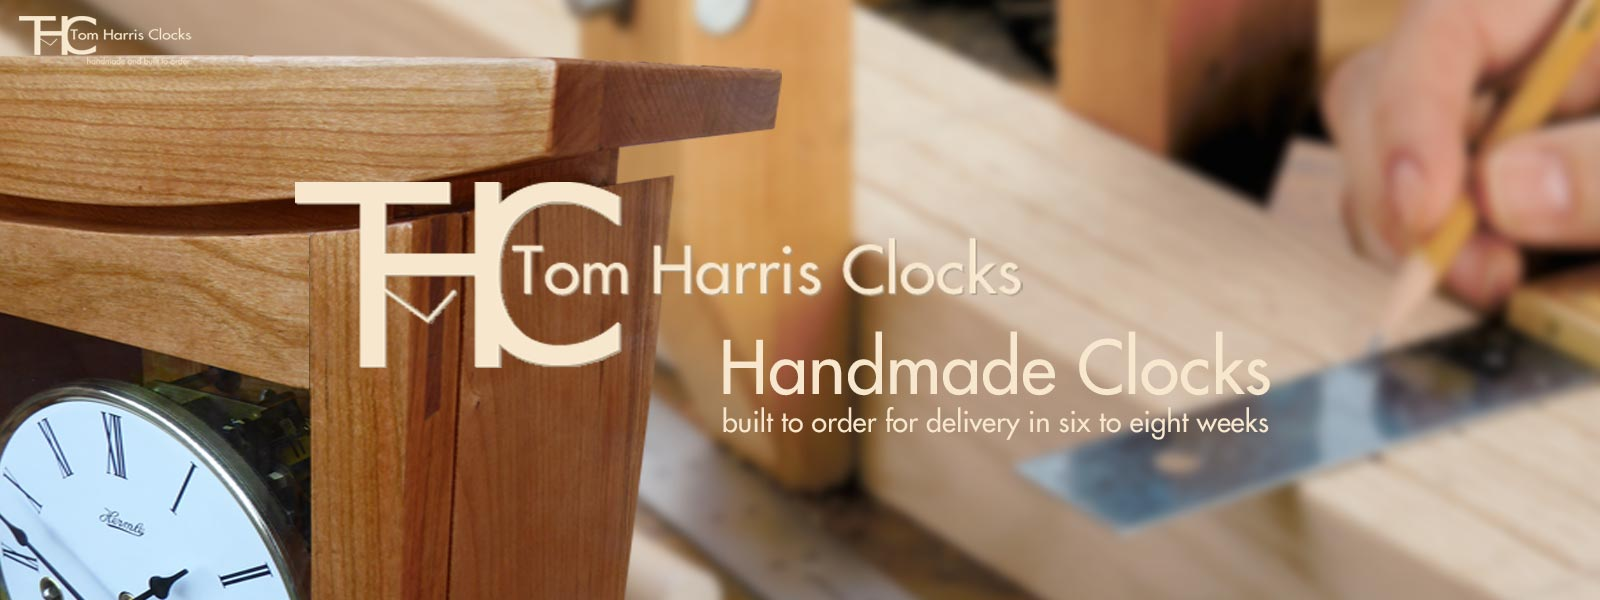 tom harris clocks - handmade clocks